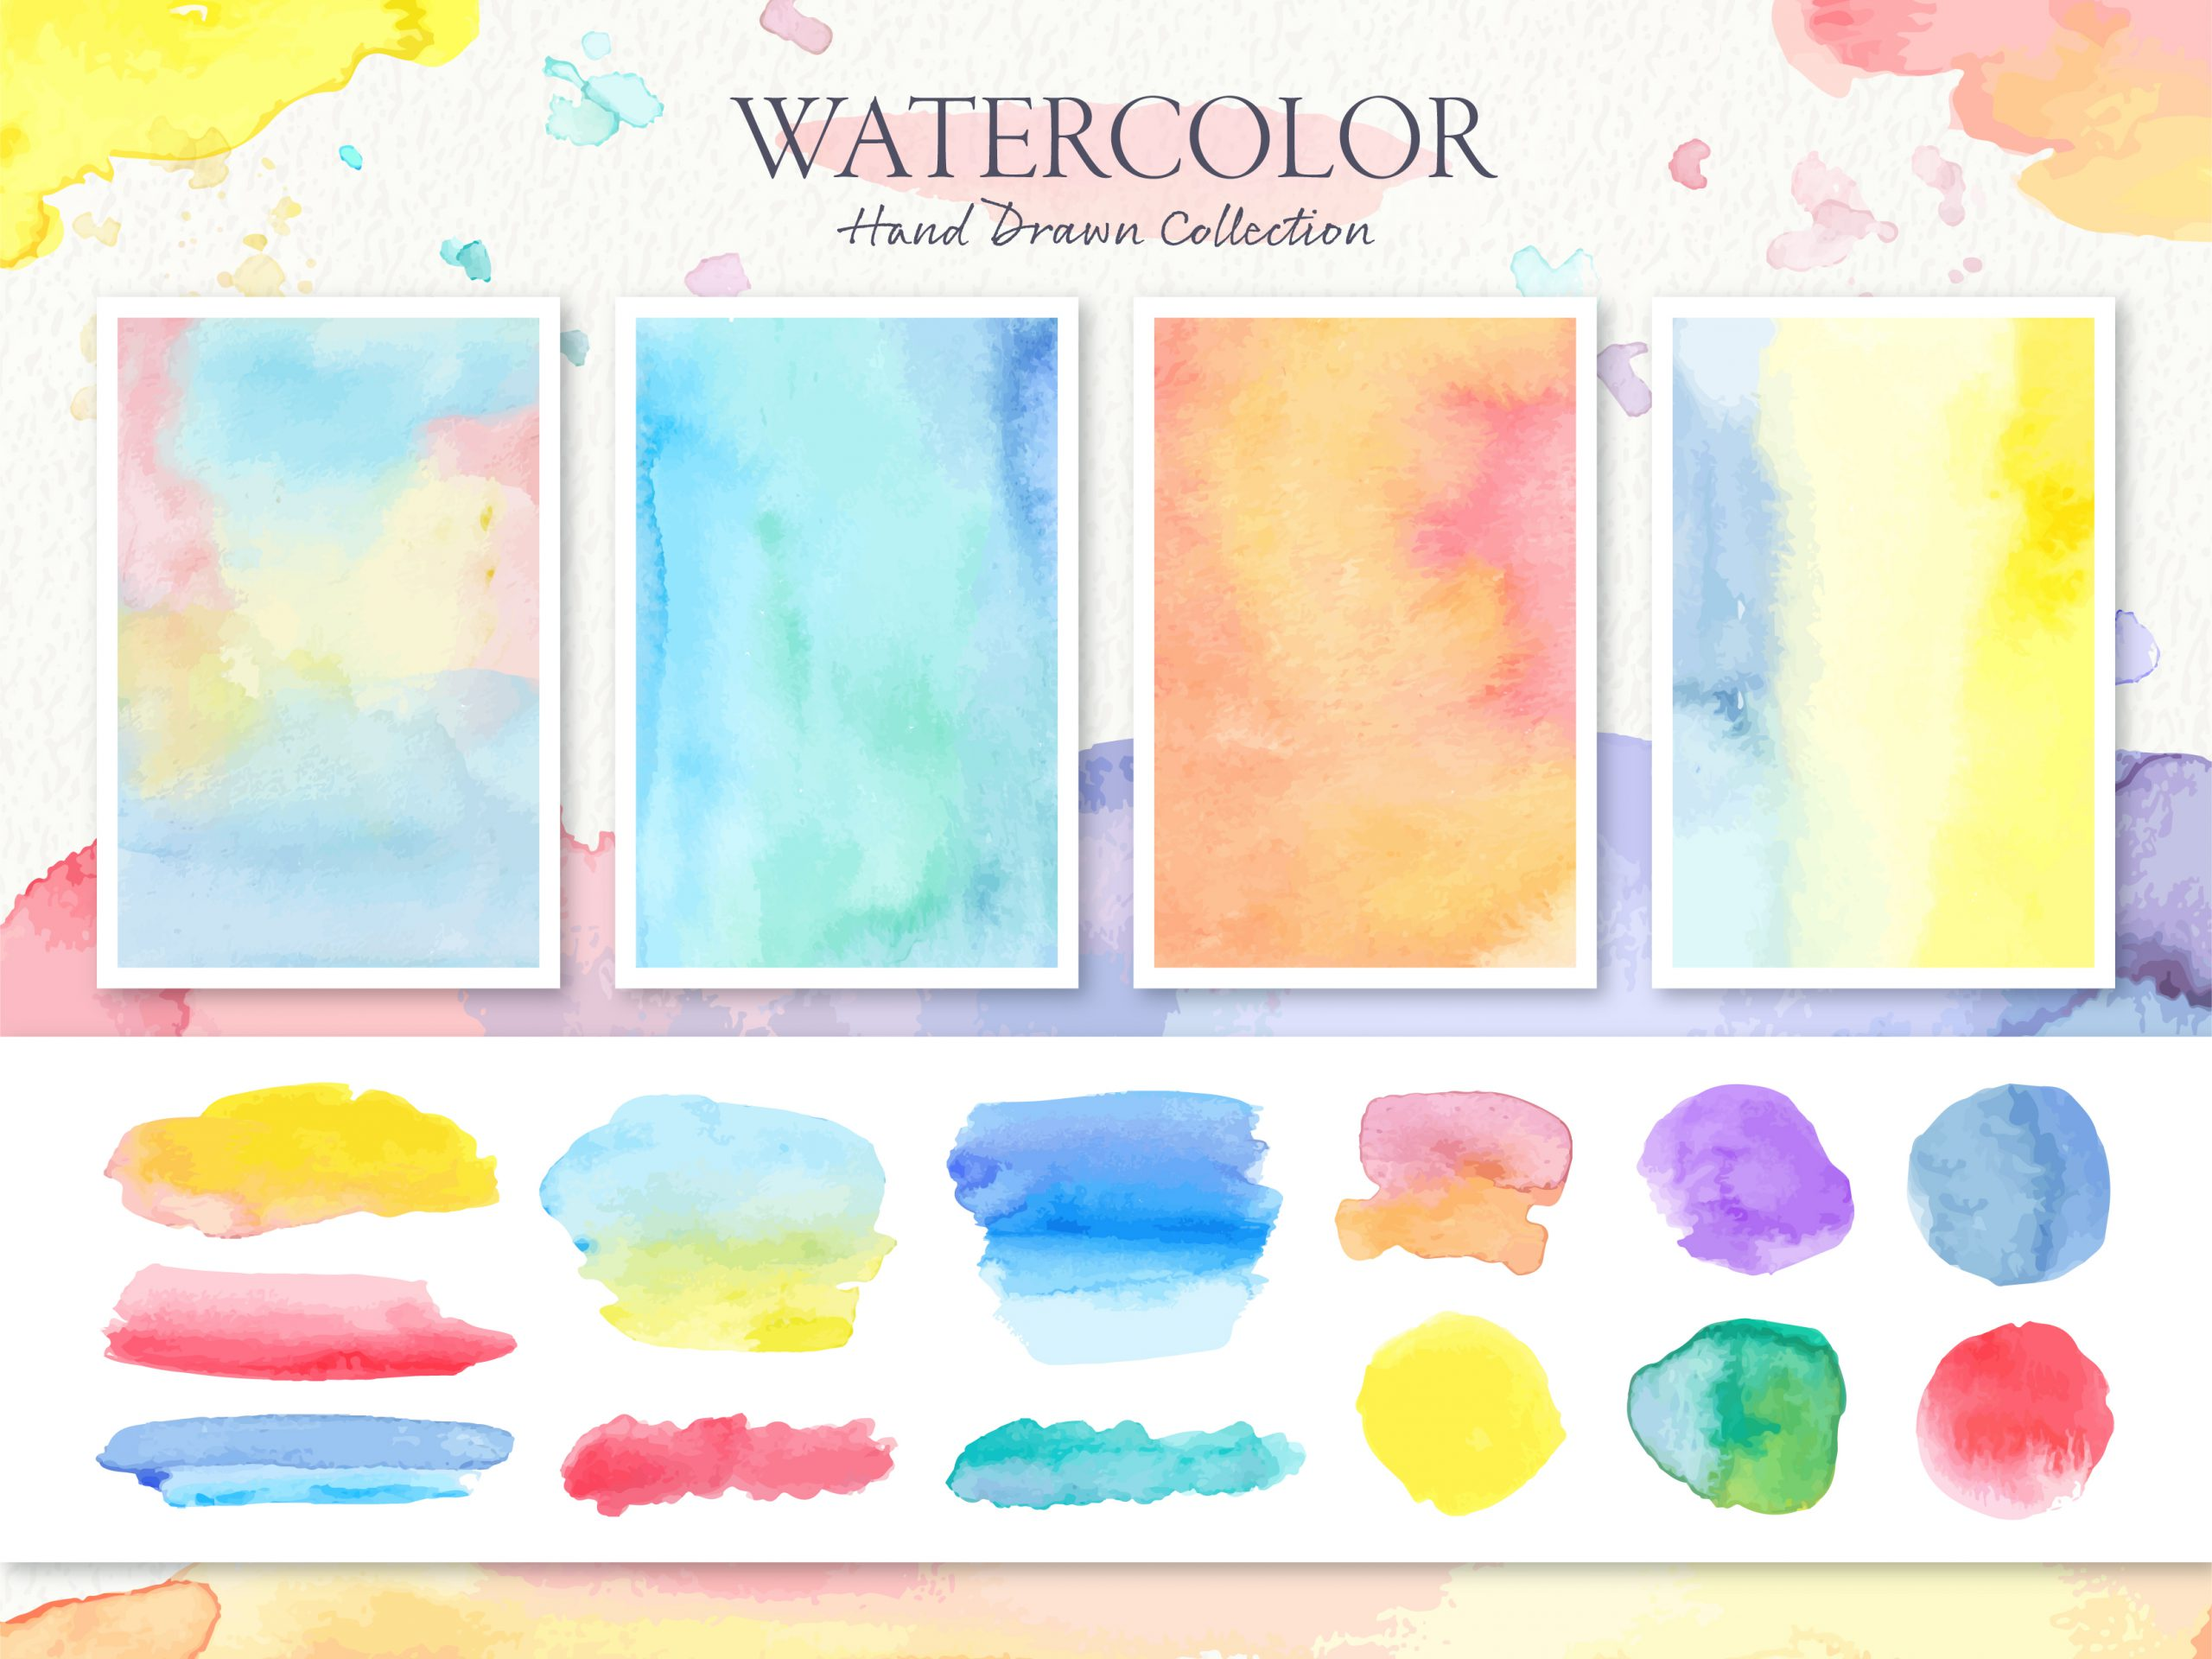 watercolor trend